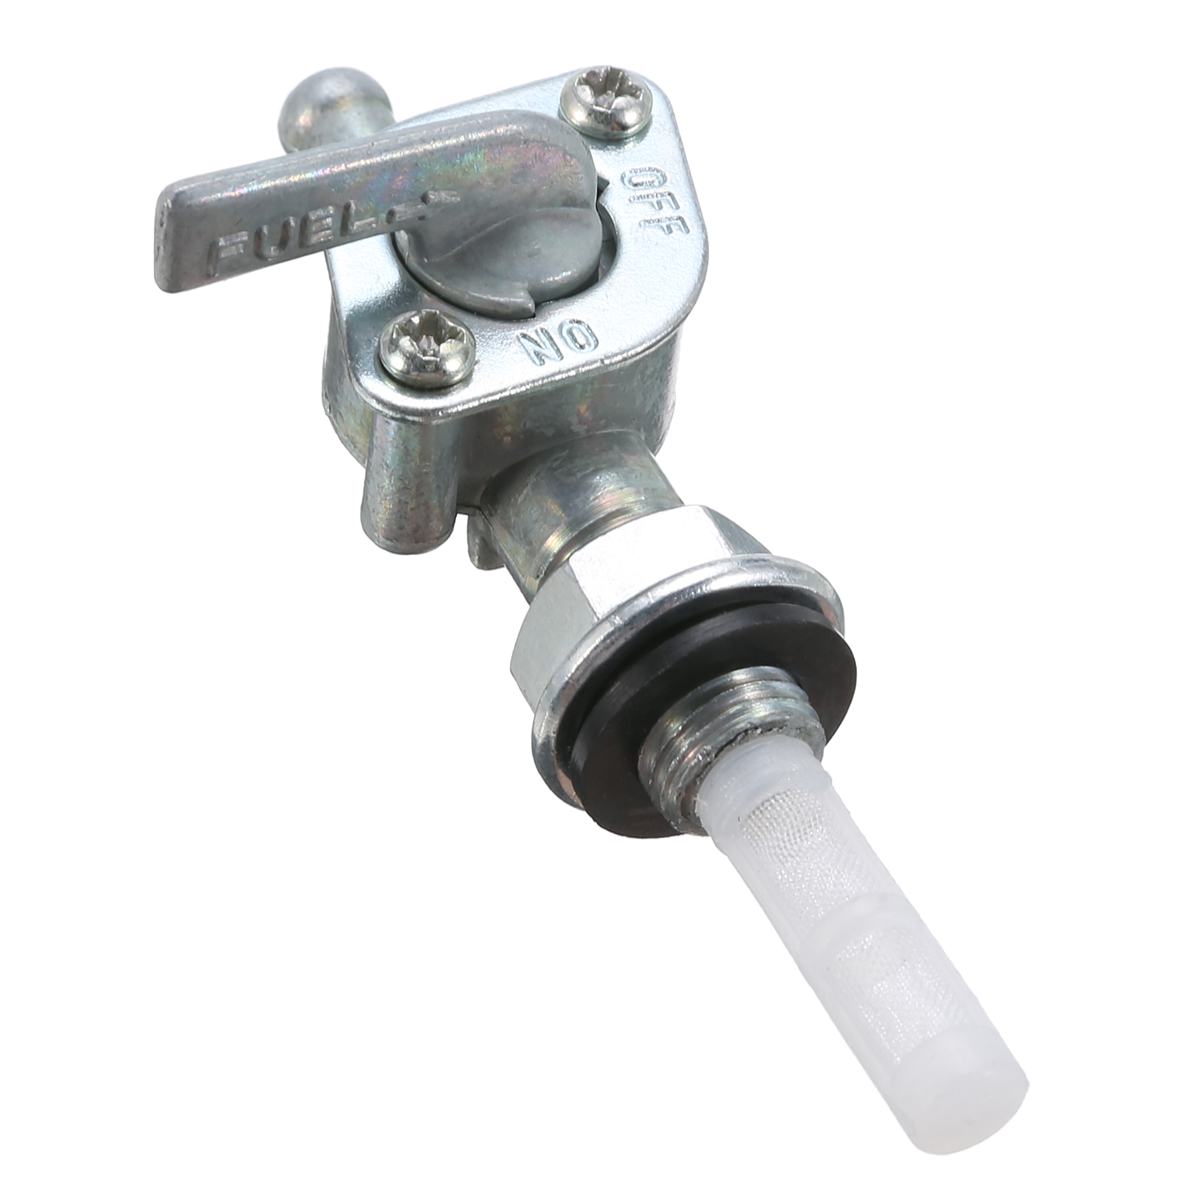 Treyues 1pc Metal Fuel Tank Switch Valve Petcock For 2 Stroke Motorized Bicycle Bike 49cc-80cc Small Engines